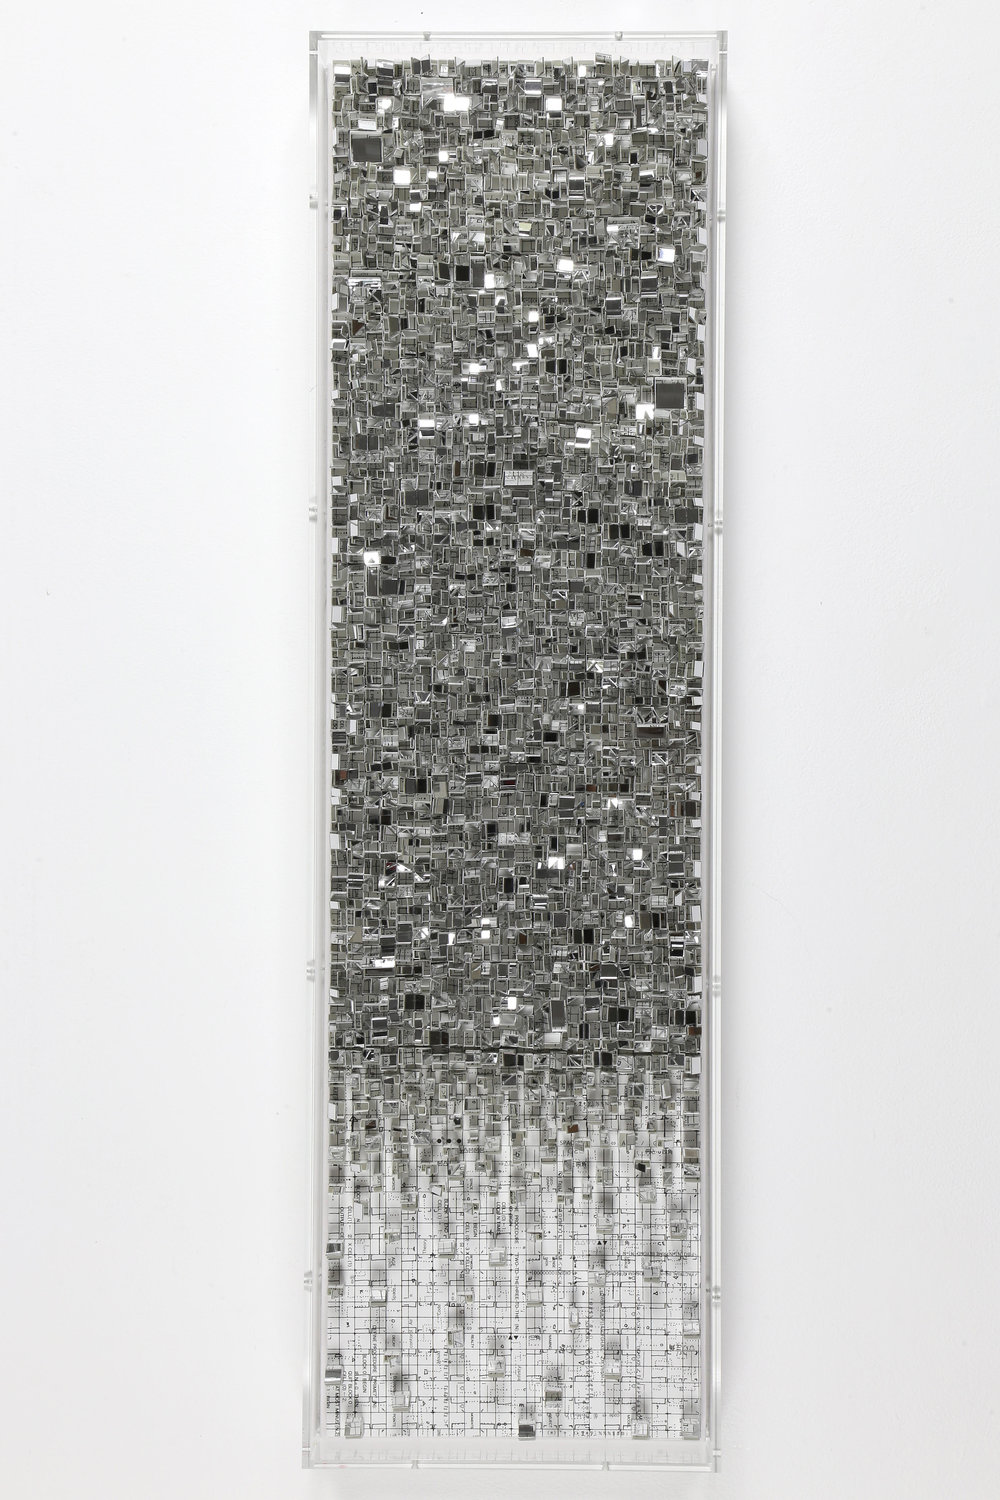 Reflection (2018), Plastic mirror, paper, ink-jet printing on wood panel, 35. X 10.2 x 2.9 inches